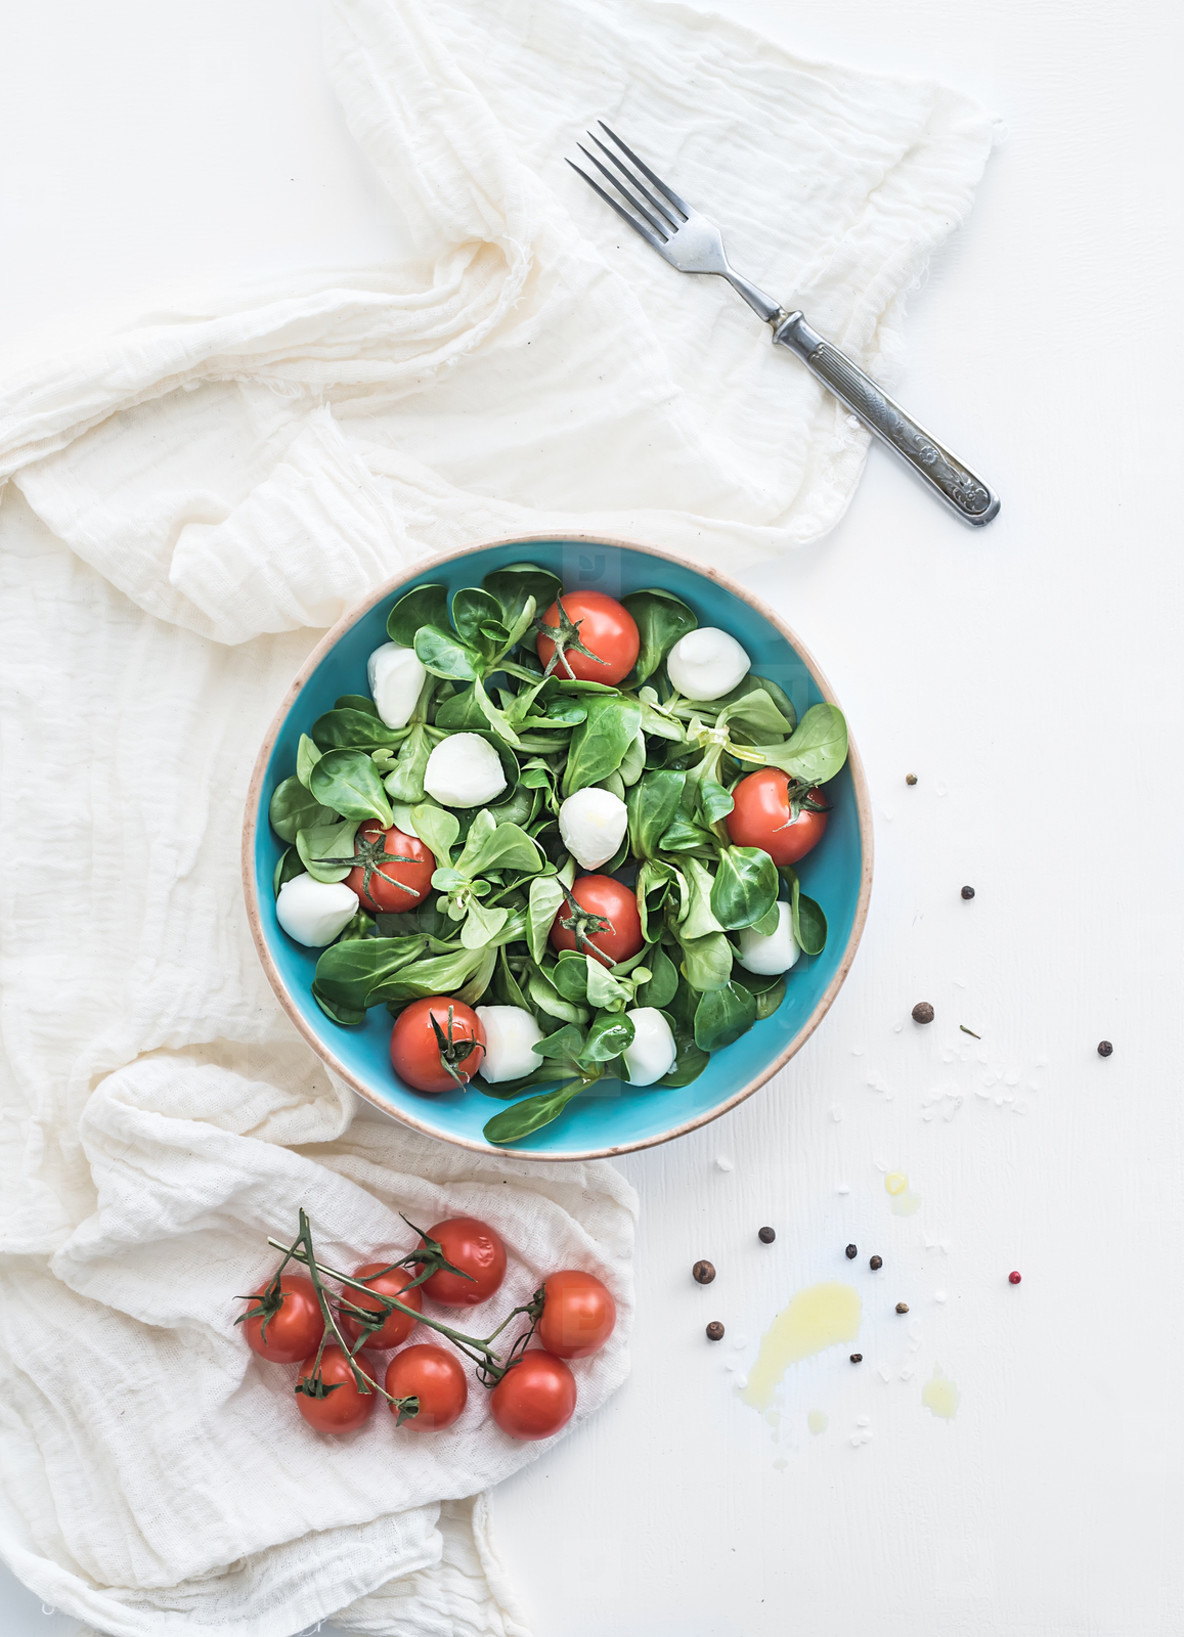 Photos - Spring salad with lamb's lettuce, mozarella and cherry-tomatoes in blue ceramic bowl over white backdrop